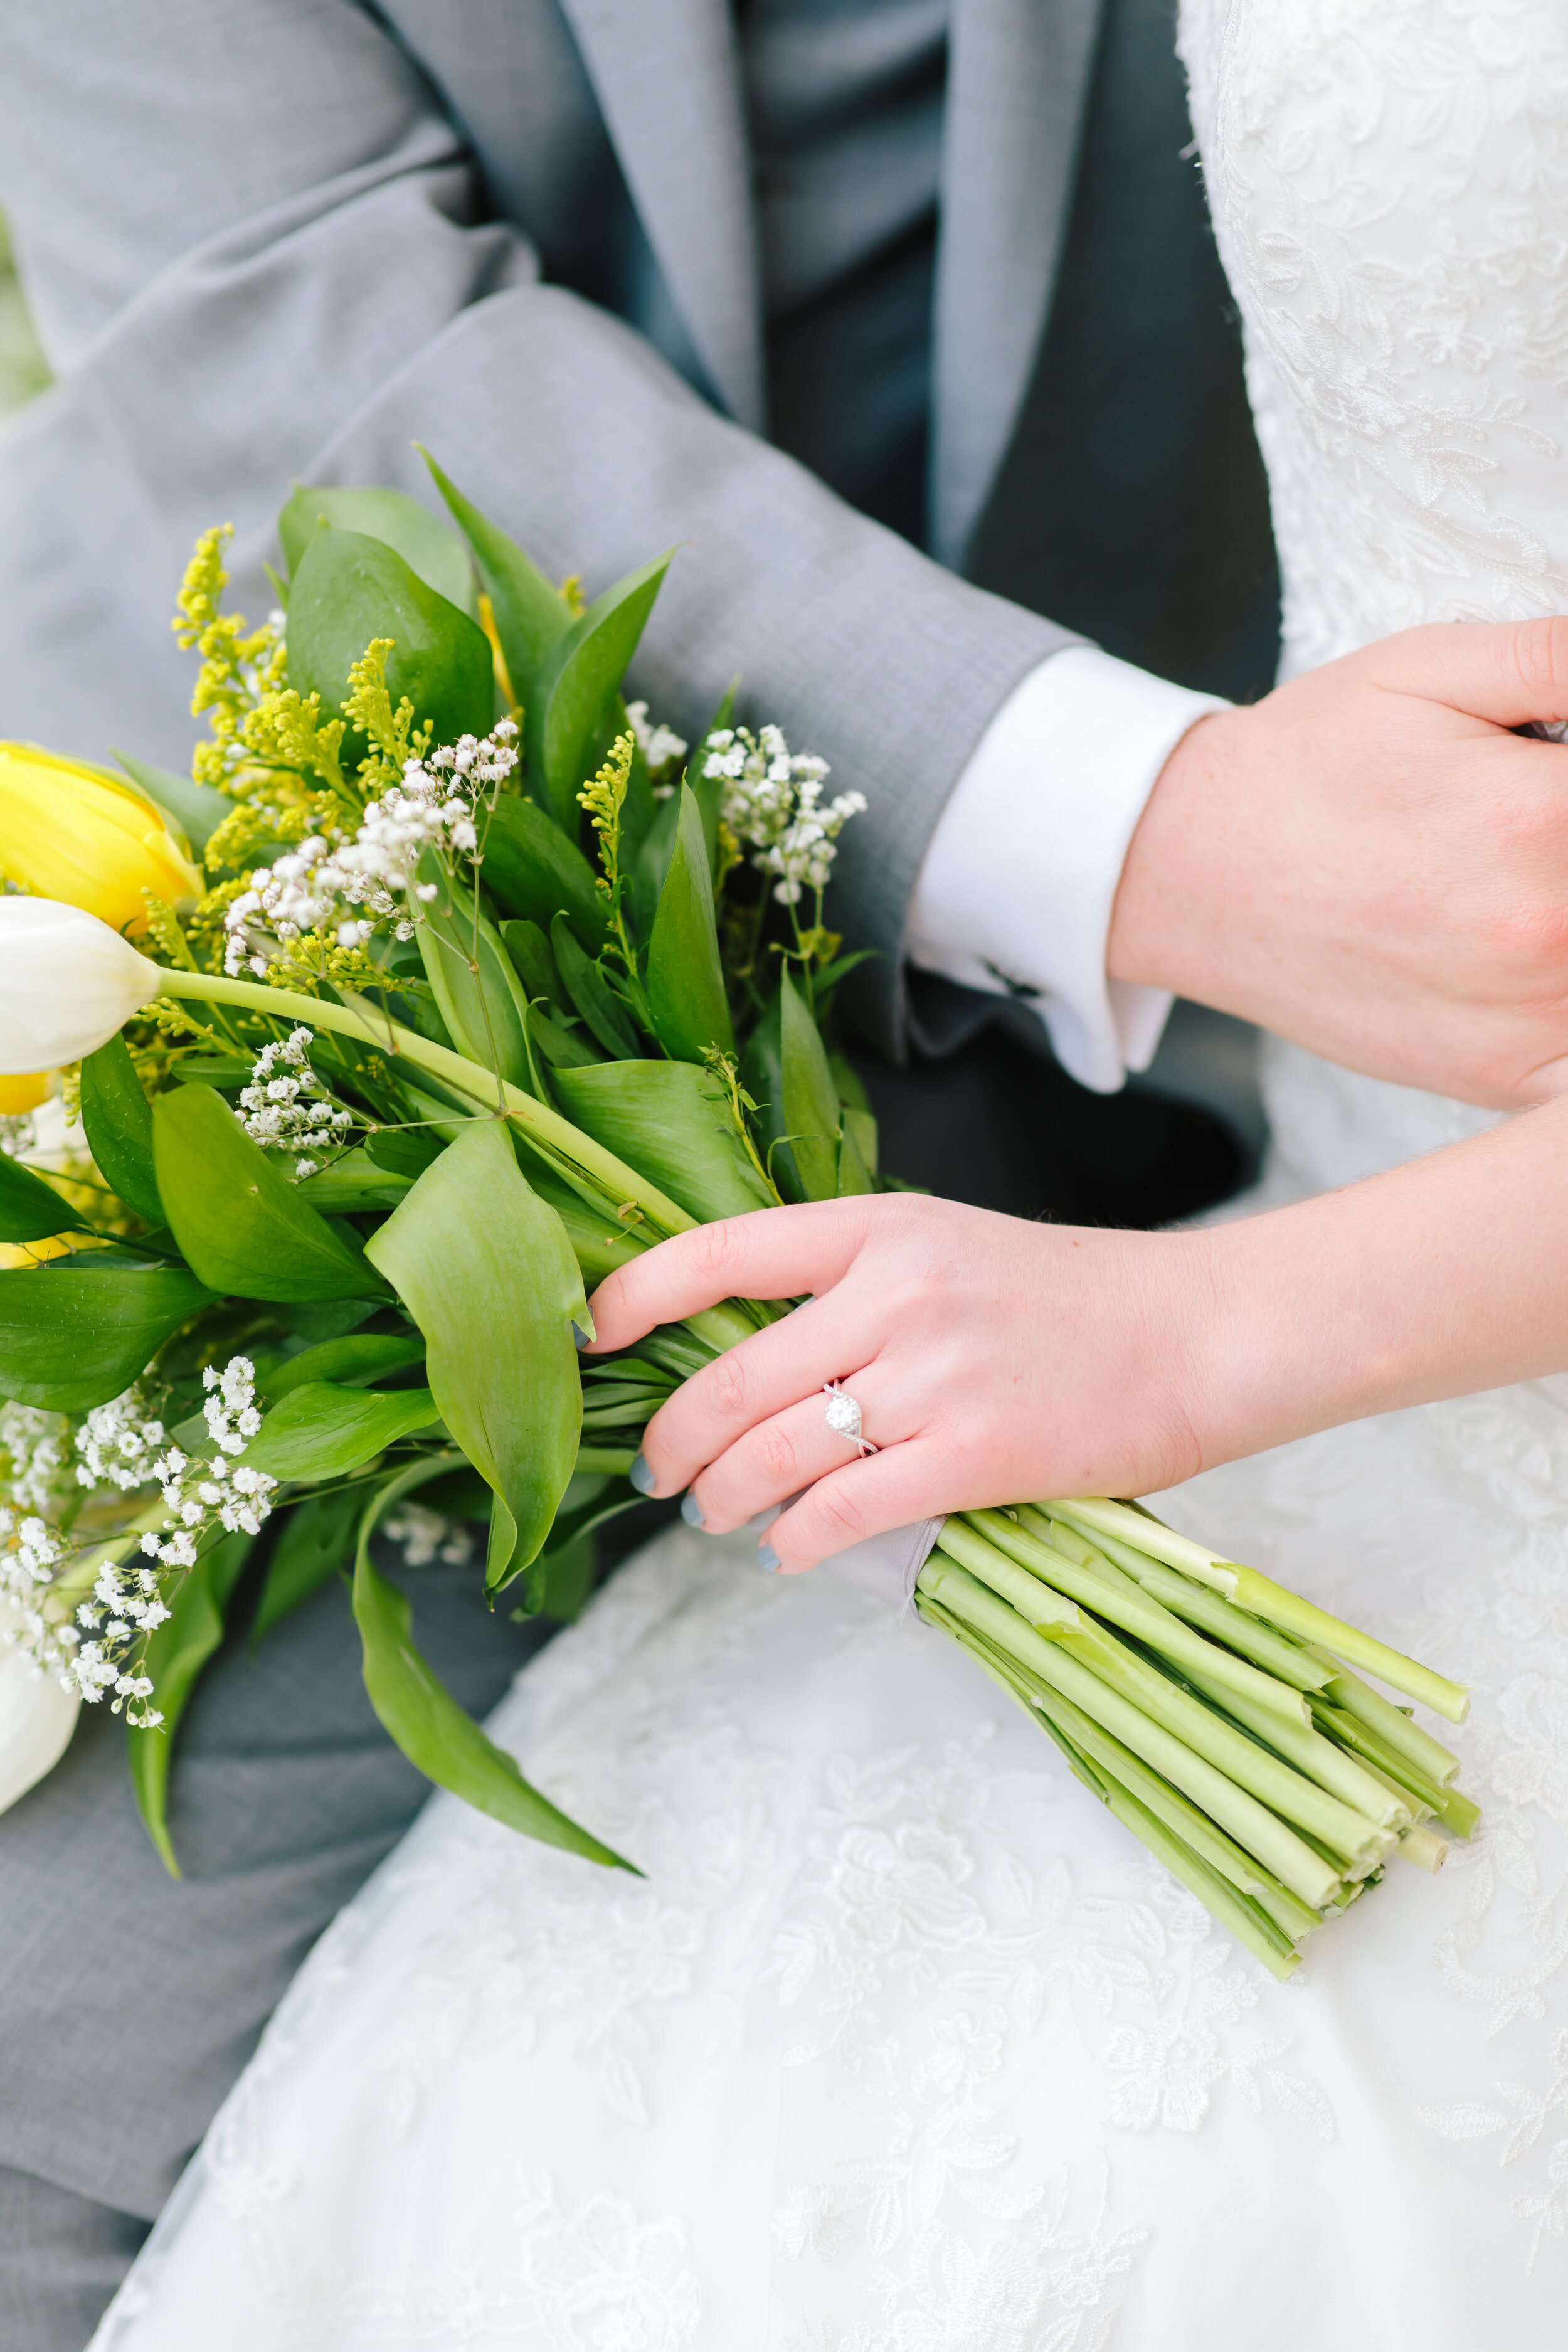 holding wedding bouquet inspiration wedding ring inspiration forever flowers grey suit perfect moment lds bride bridals wedding day memories wedding scrapbook cover professional wedding photographer payson utah utah couple wedding picture goals wedding goals lds couple love #weddingsession #weddinginspo #ldswedding #ldsbride #couplegoals #paysontemple #temple #profressionalphotographer #utah #love